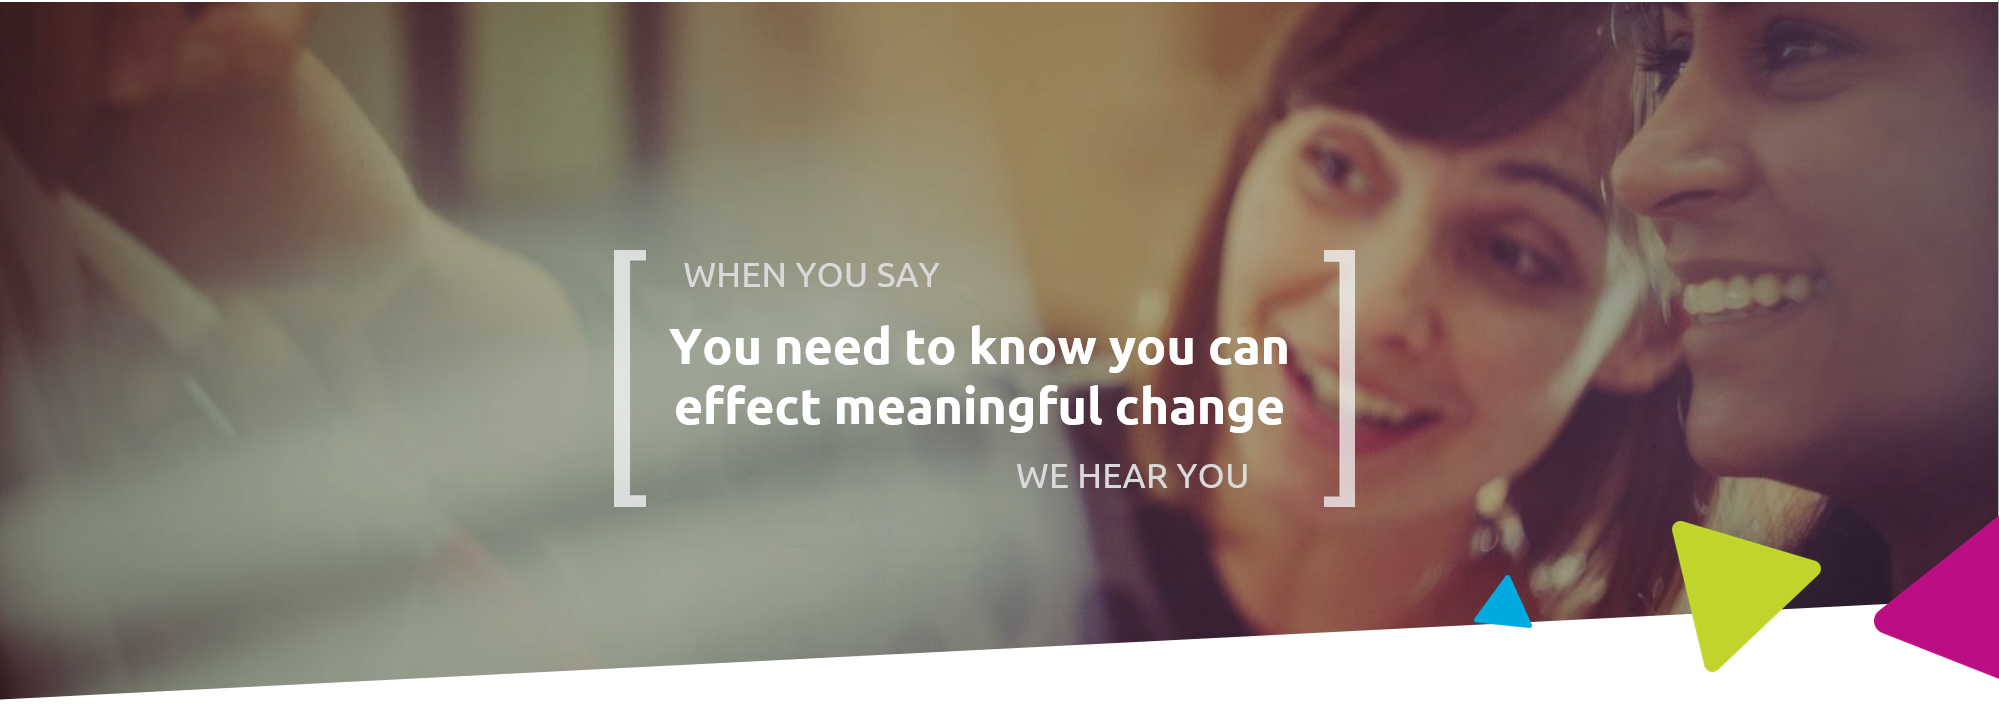 When you say you need to know you can affect meaningful change, we hear you